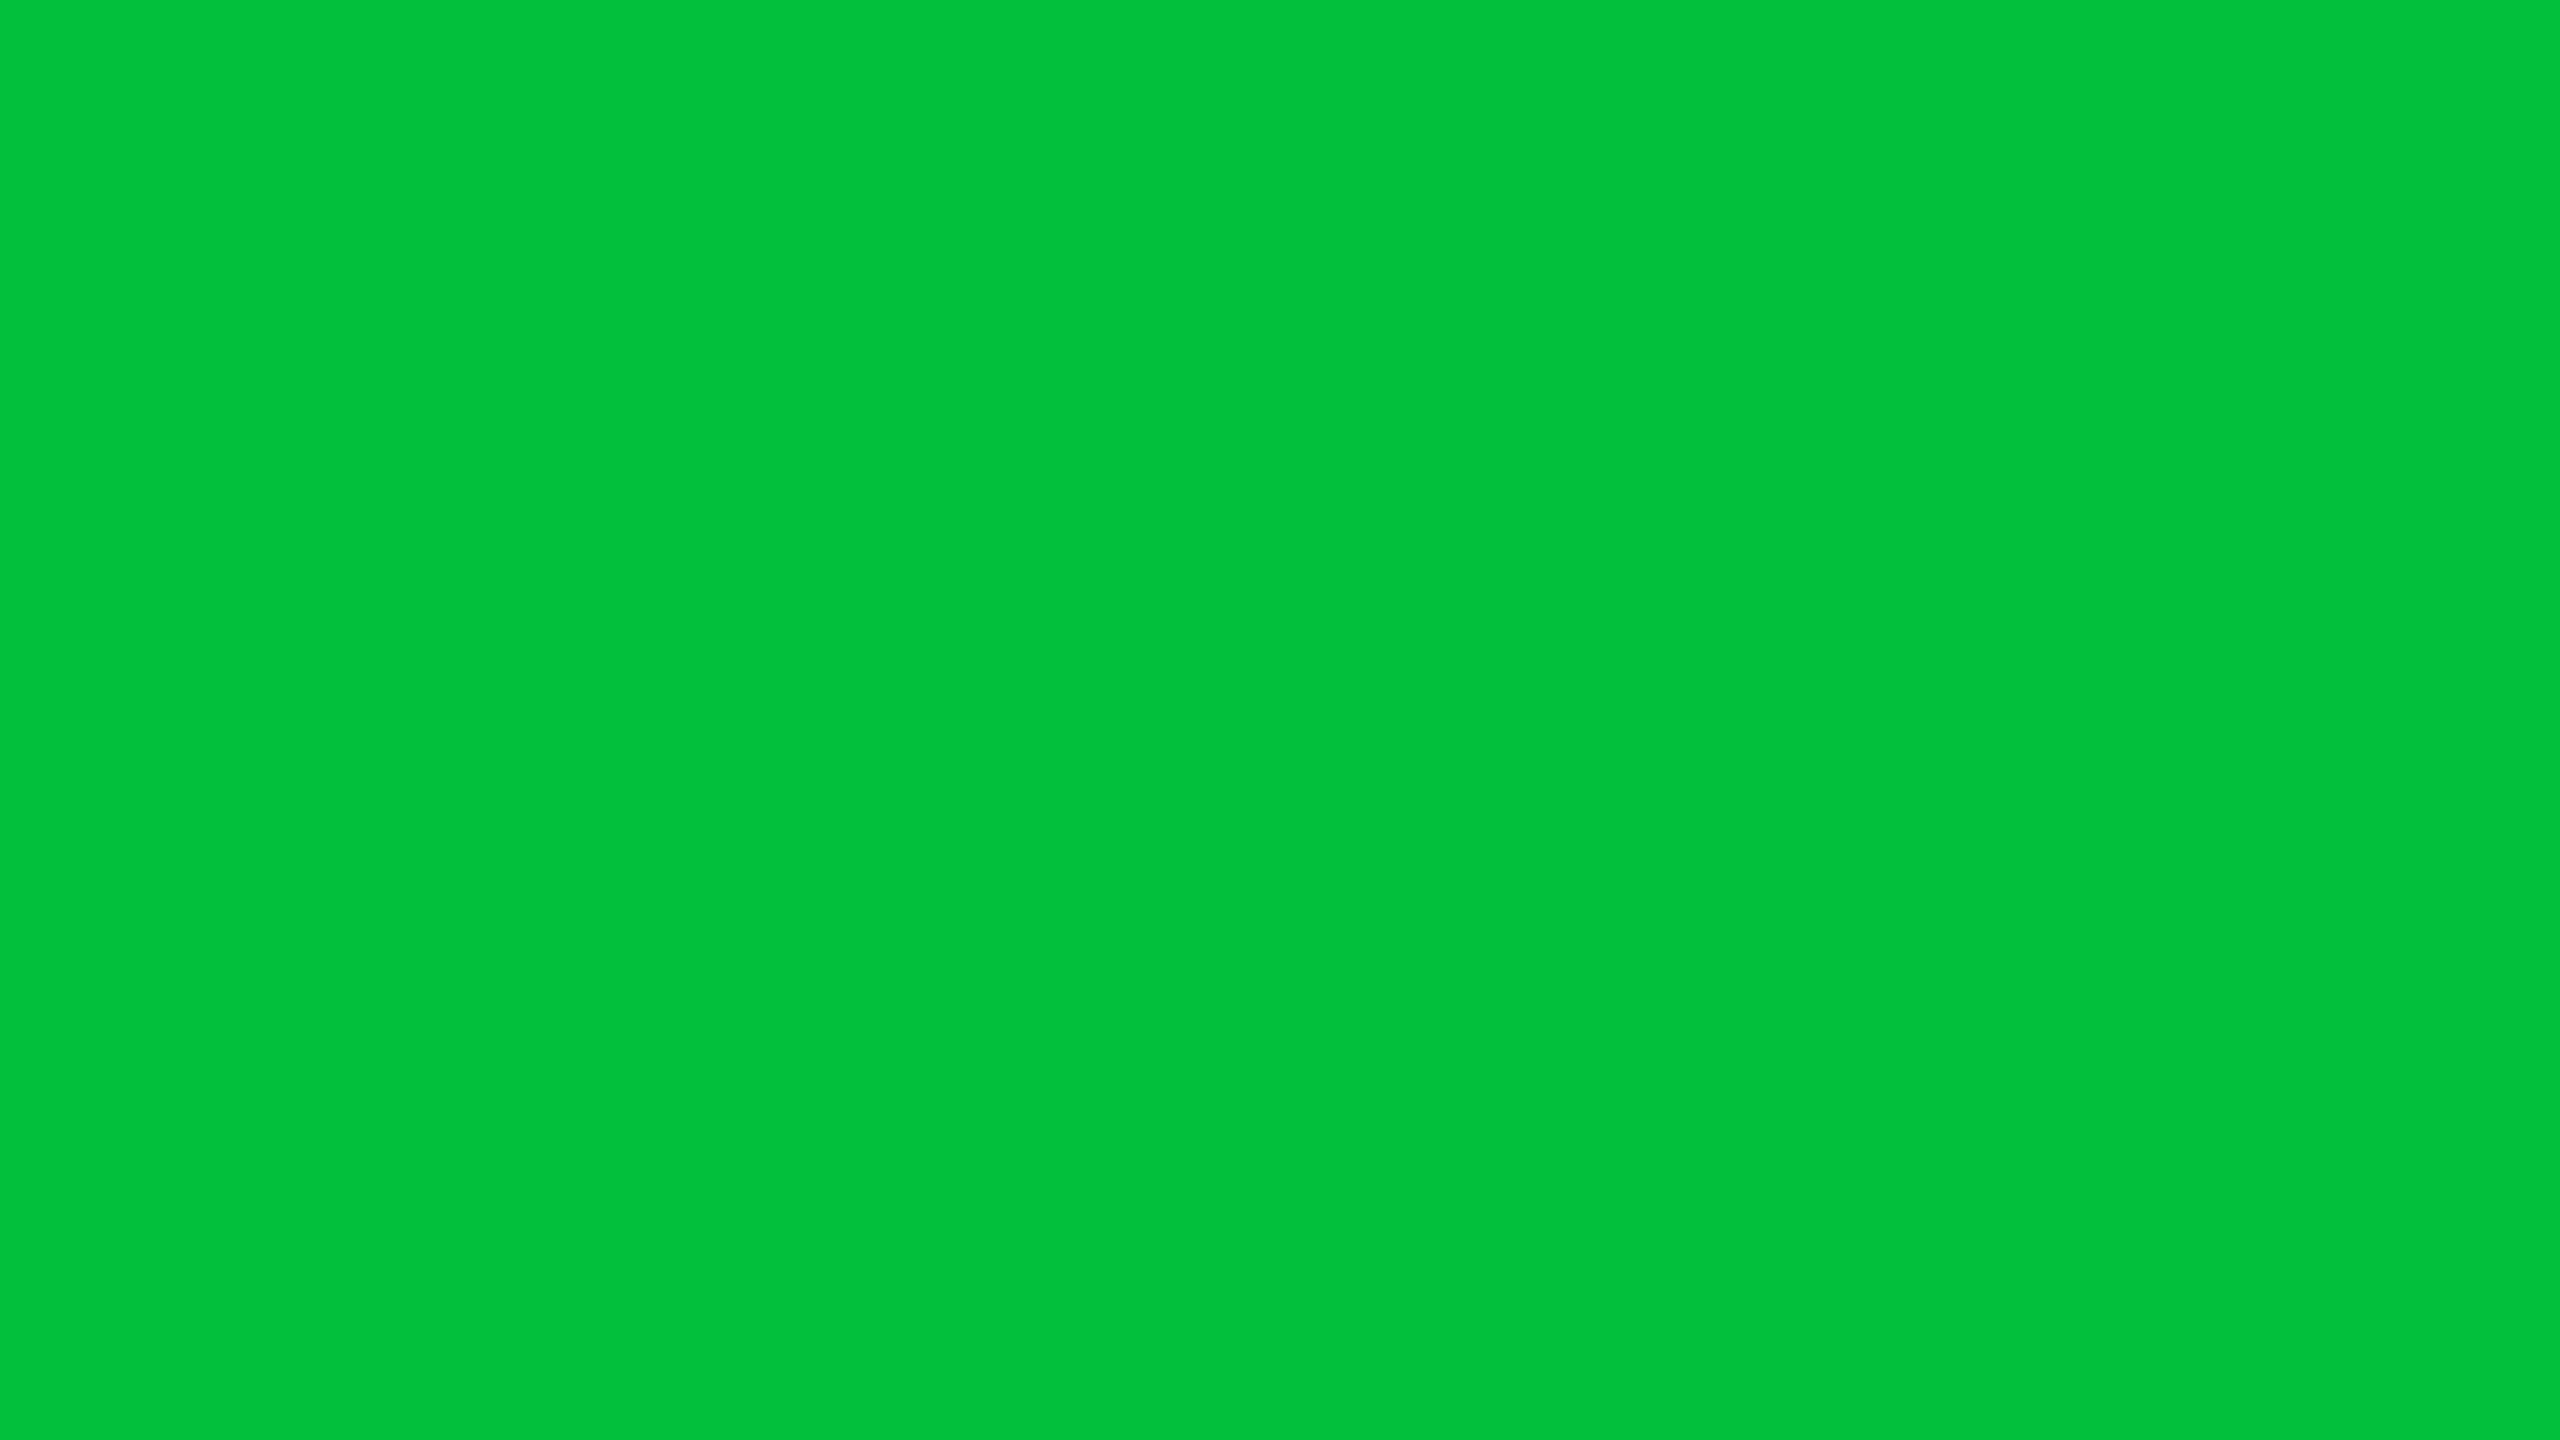 2560x1440 Dark Pastel Green Solid Color Background